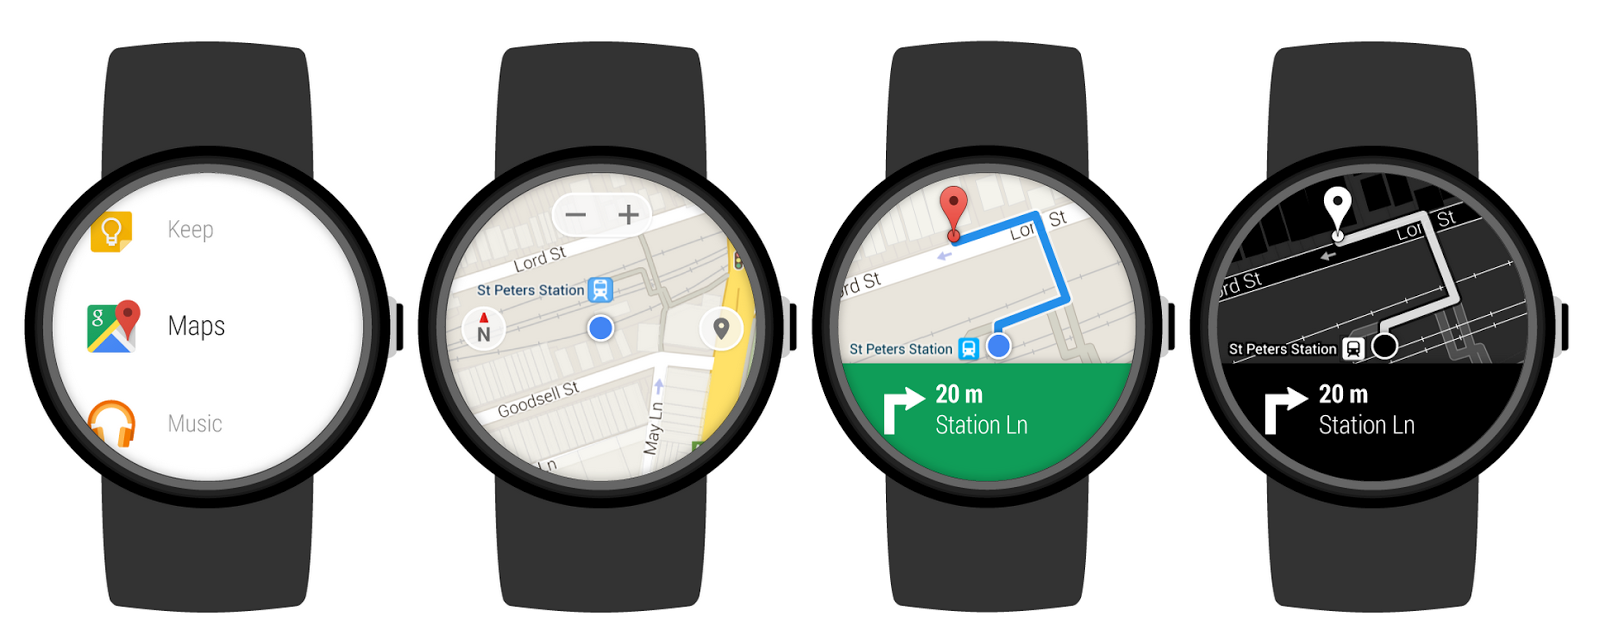 Android Wear this is text note   android wear, google maps app, android